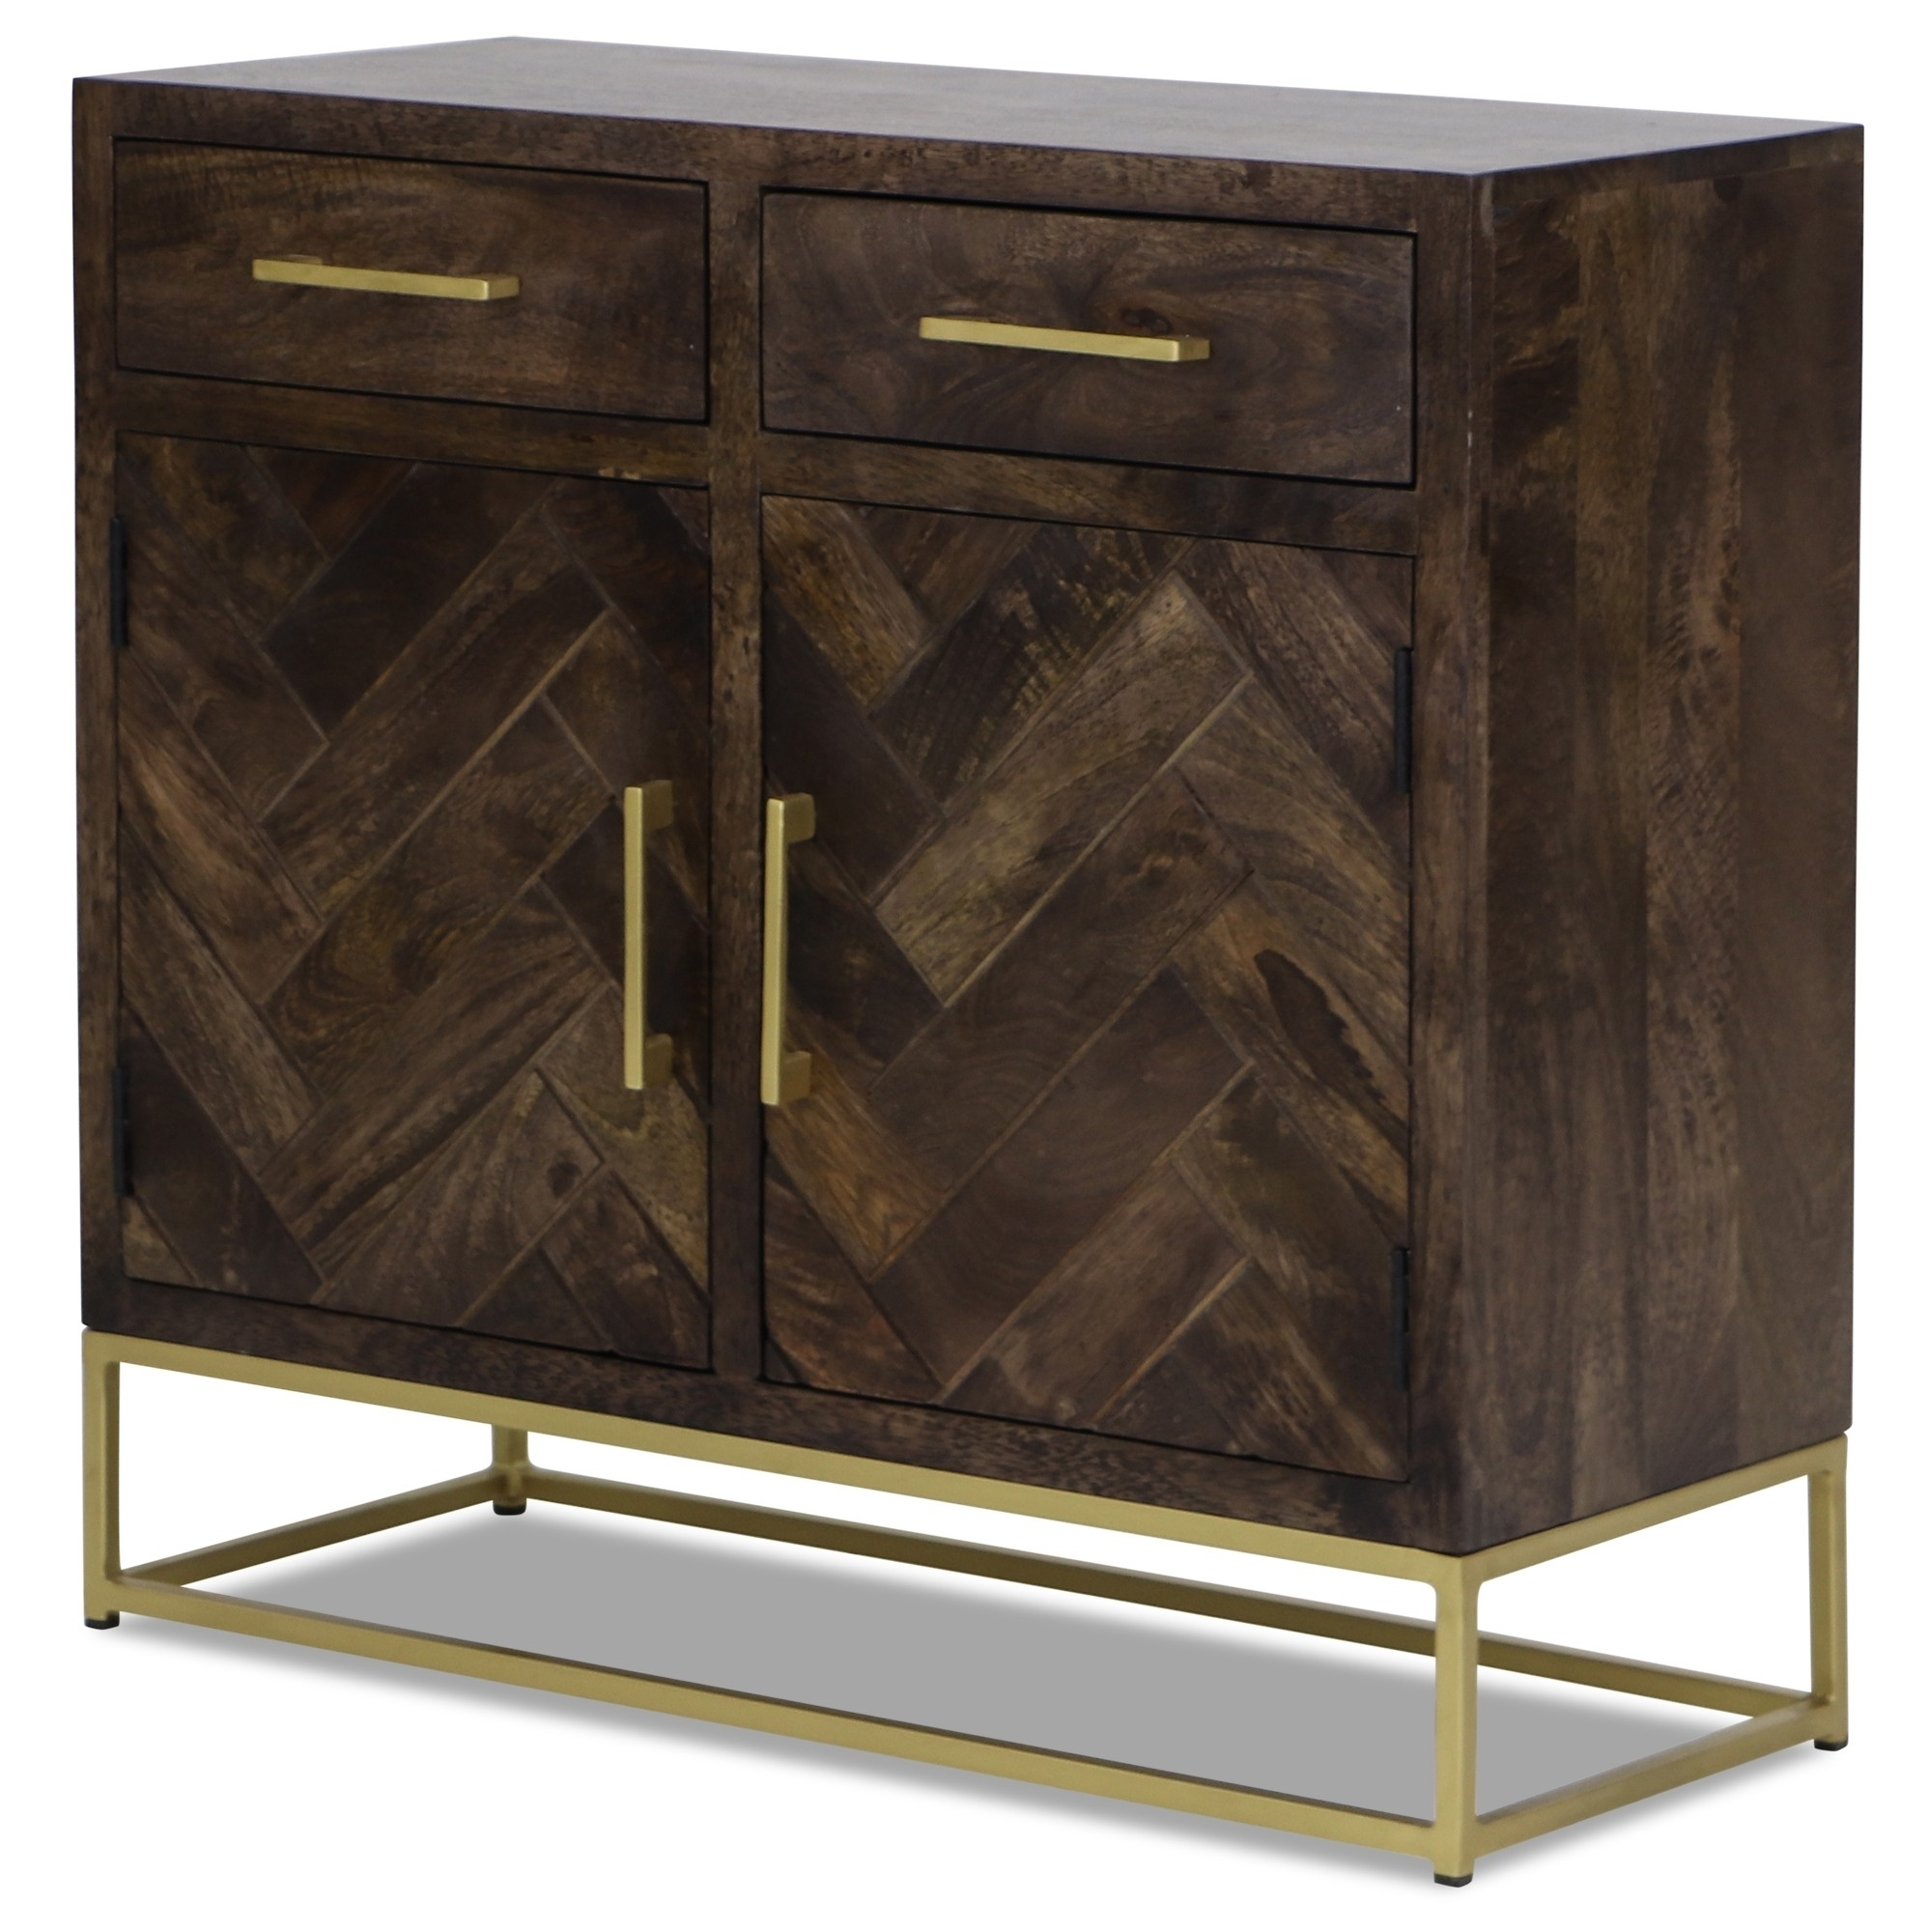 Chiyo Sideboard | Furniture & Home Décor | Fortytwo within Vintage Brown Textured Sideboards (Image 5 of 30)